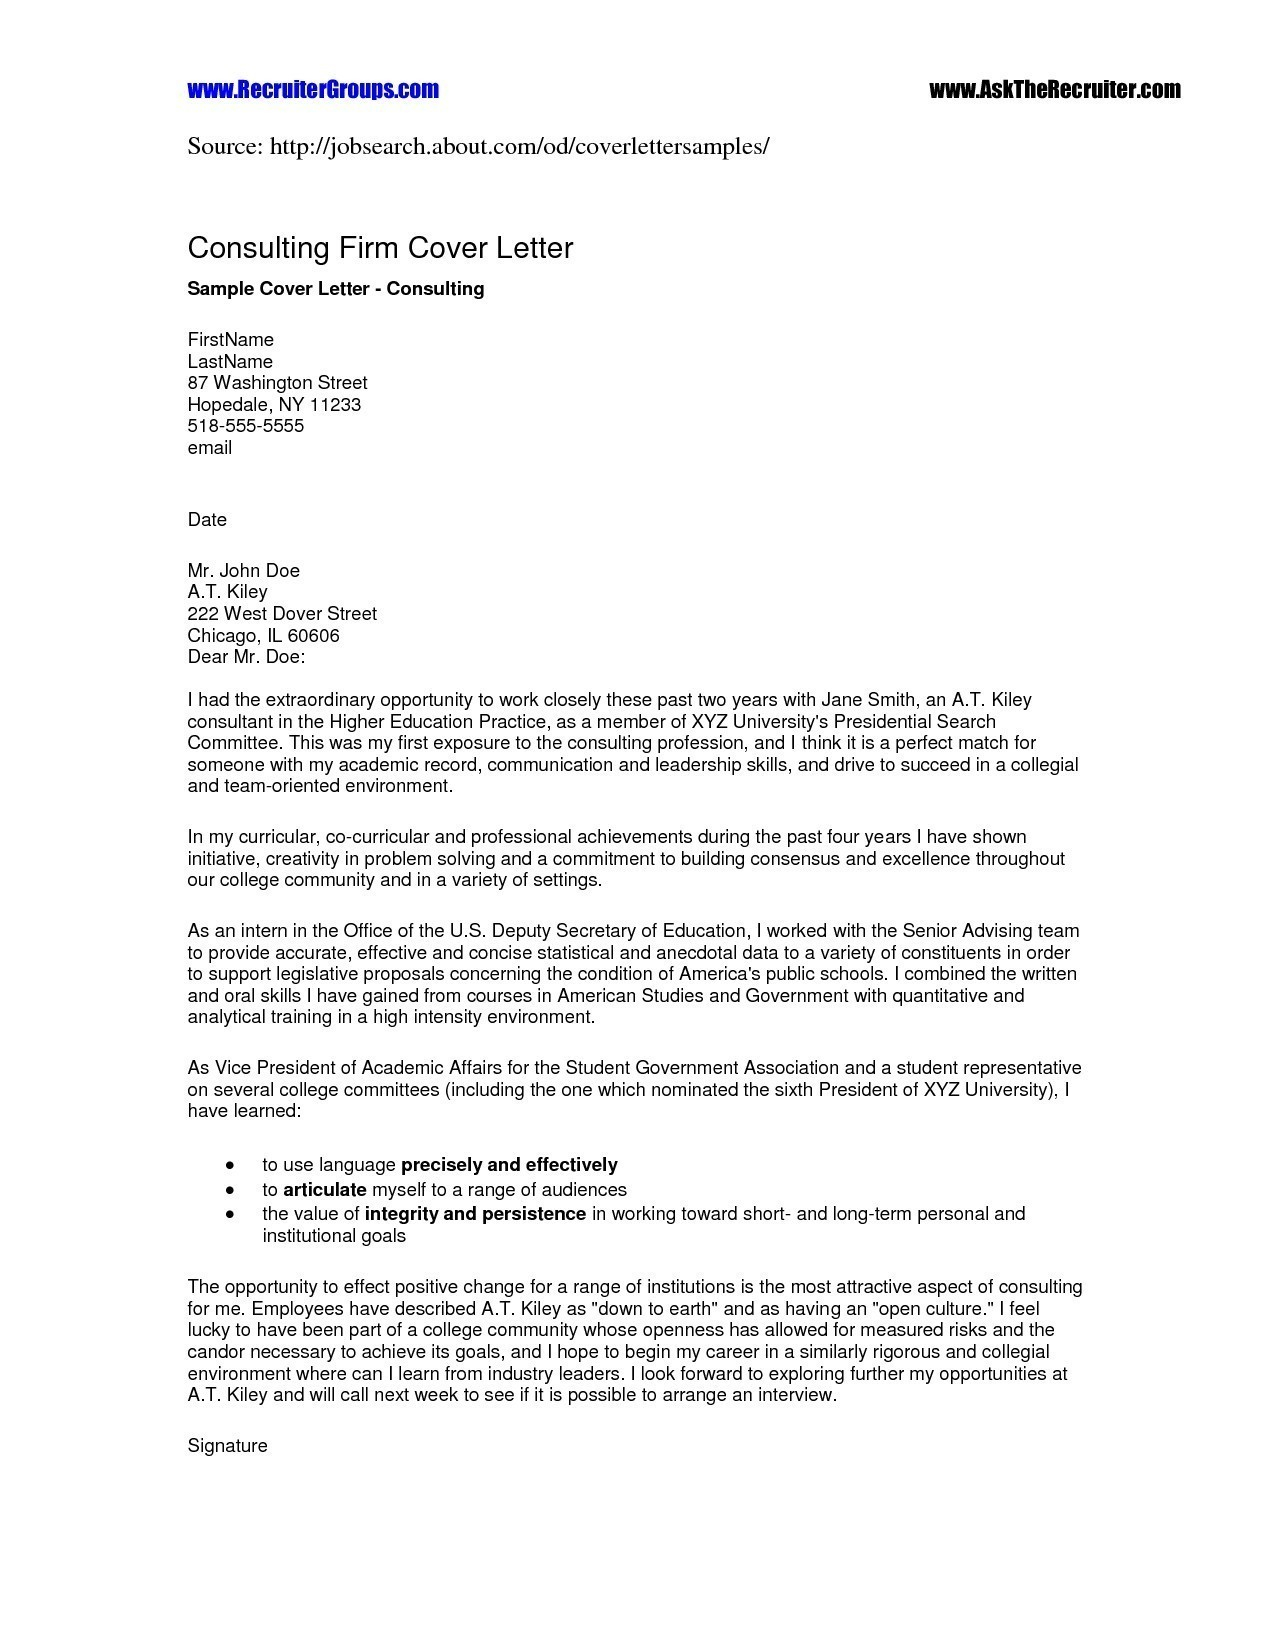 Maintenance Cover Letter Template - Cover Letter for Automotive Service Advisor New Job Application